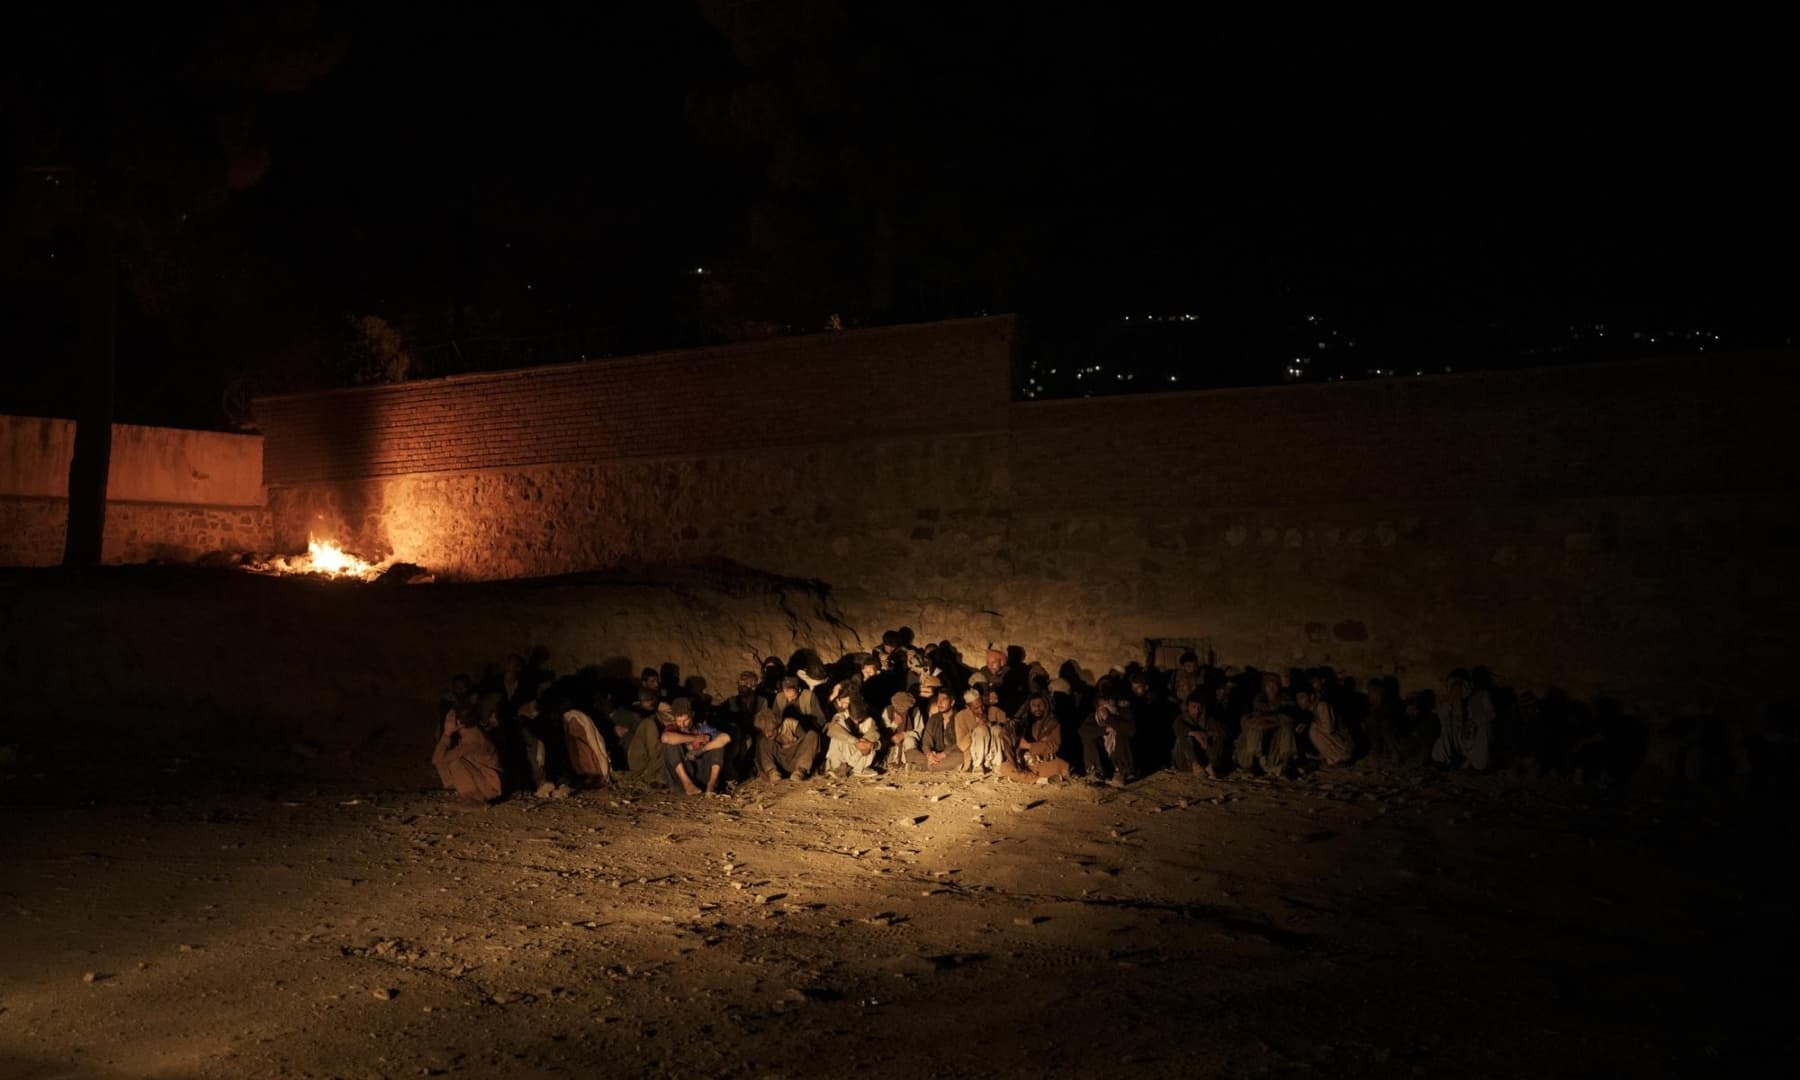 Drug users detained during a Taliban raid sit at a police station as they wait to be transferred to the Avicenna Medical Hospital for Drug Treatment in Kabul, Afghanistan, October 1, 2021. — AP